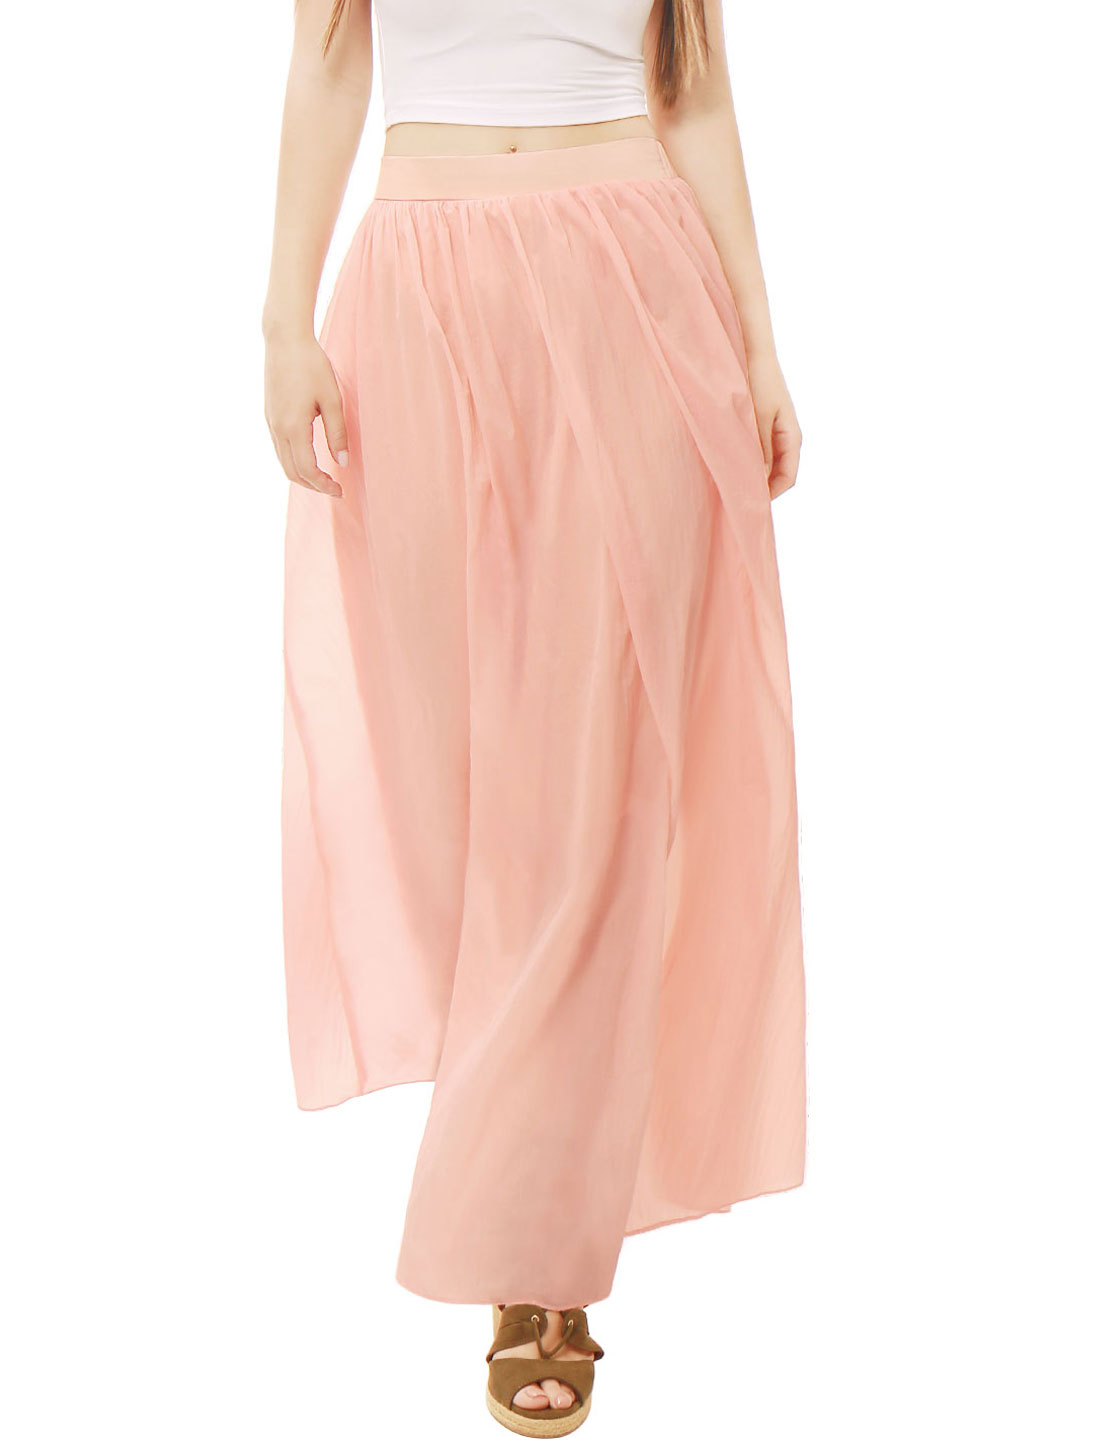 Women Pleated Elastic Waist Flowy Boho Maxi Skirt Pink L